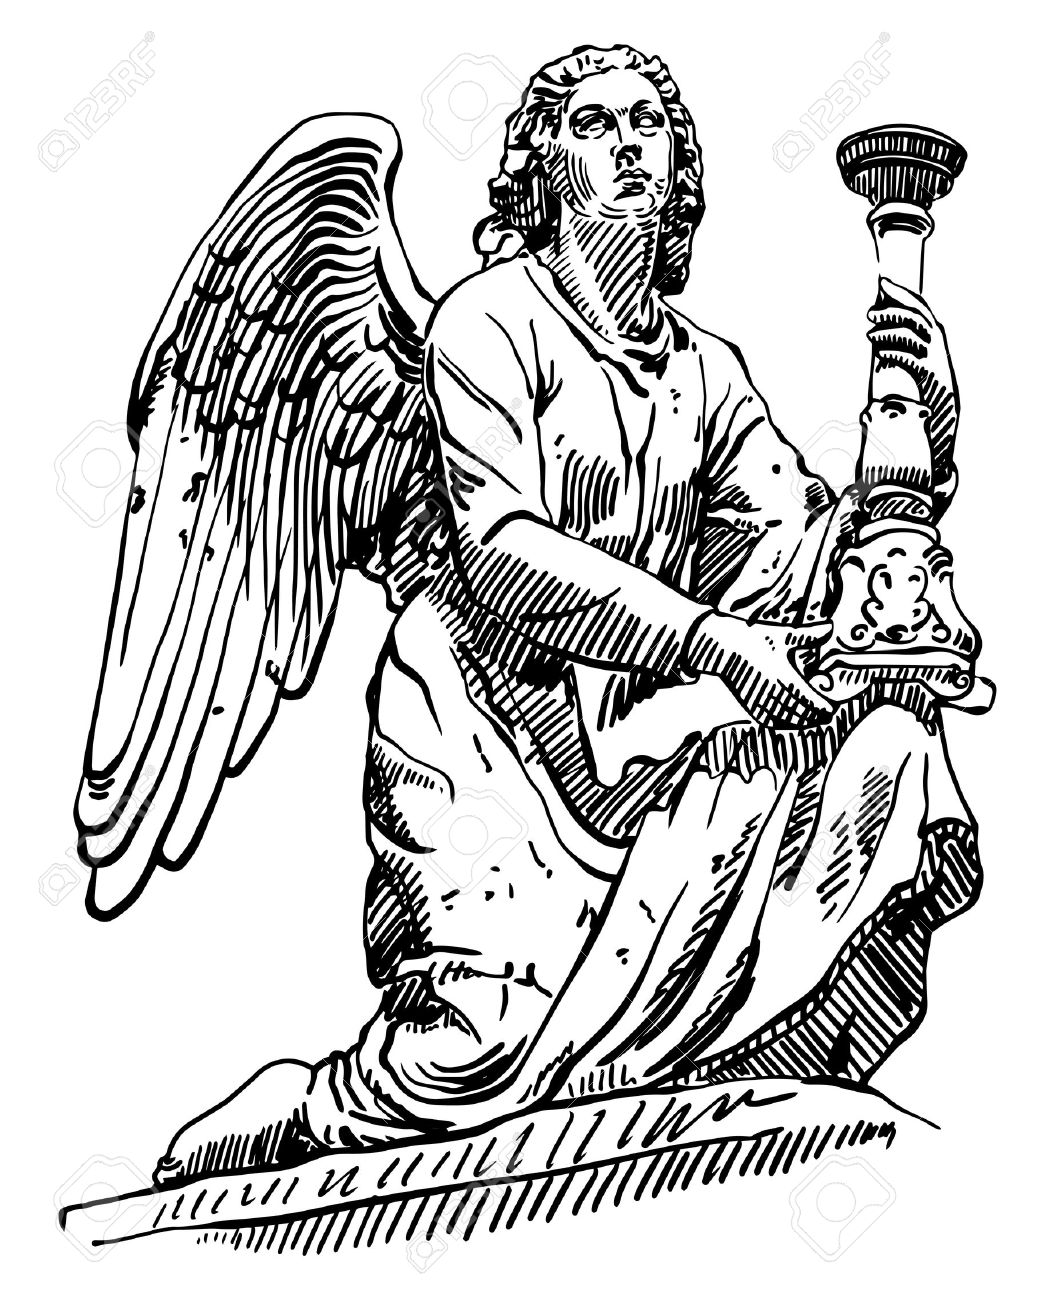 Archangel clipart #6, Download drawings